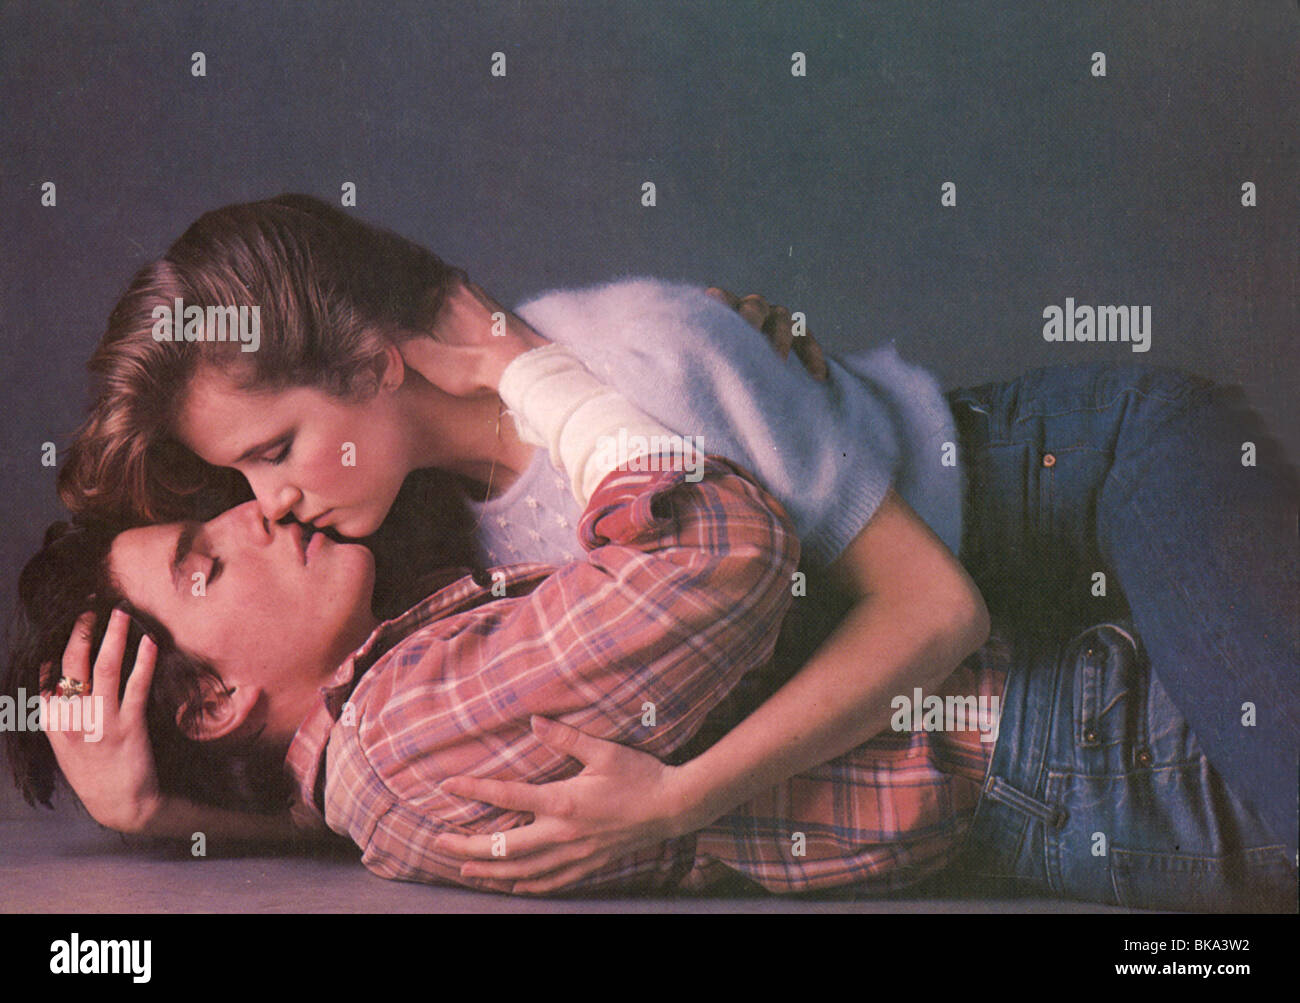 ALL THE RIGHT MOVES (1983) TOM CRUISE, LEA THOMPSON ARM 008FOH - Stock Image